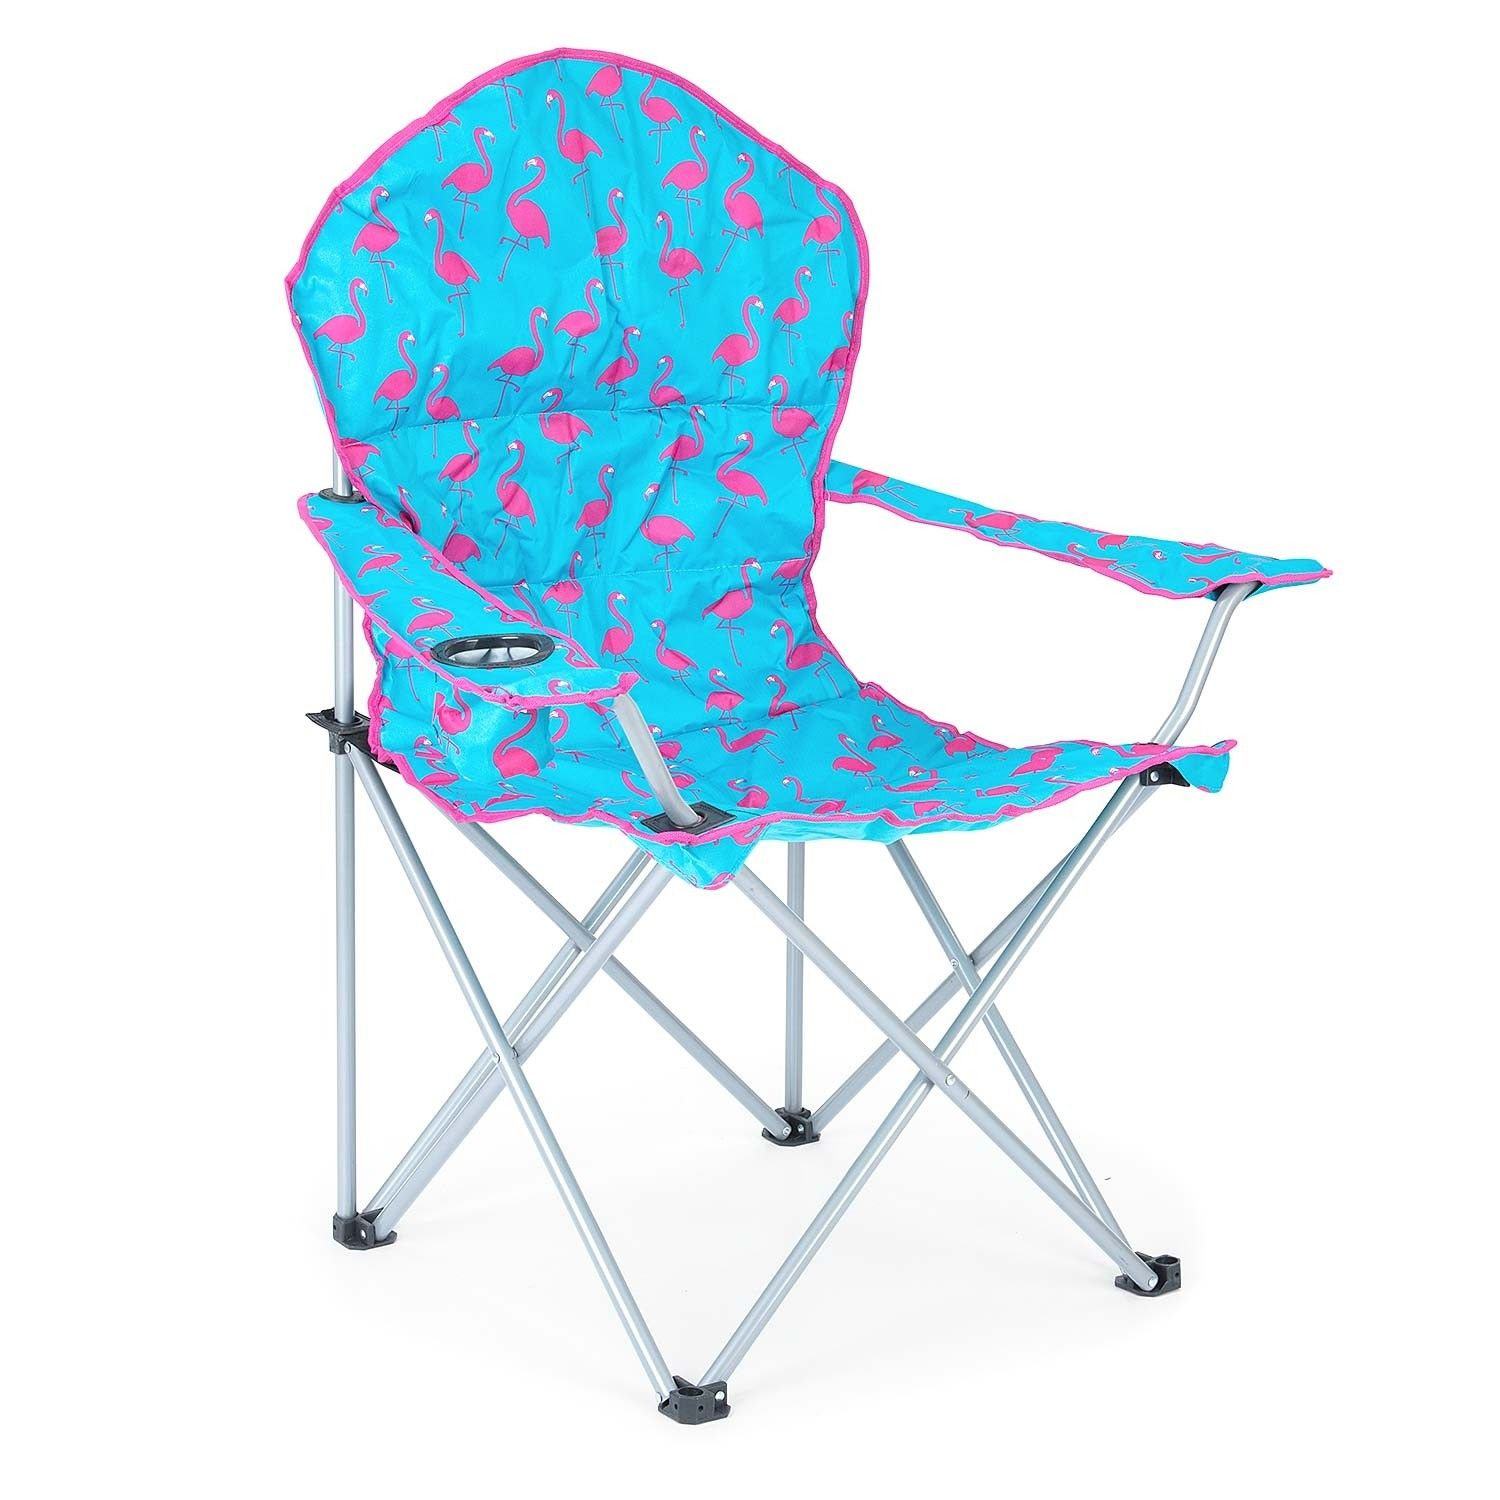 Trail Deluxe Flamingo Camping Chair Camping chairs